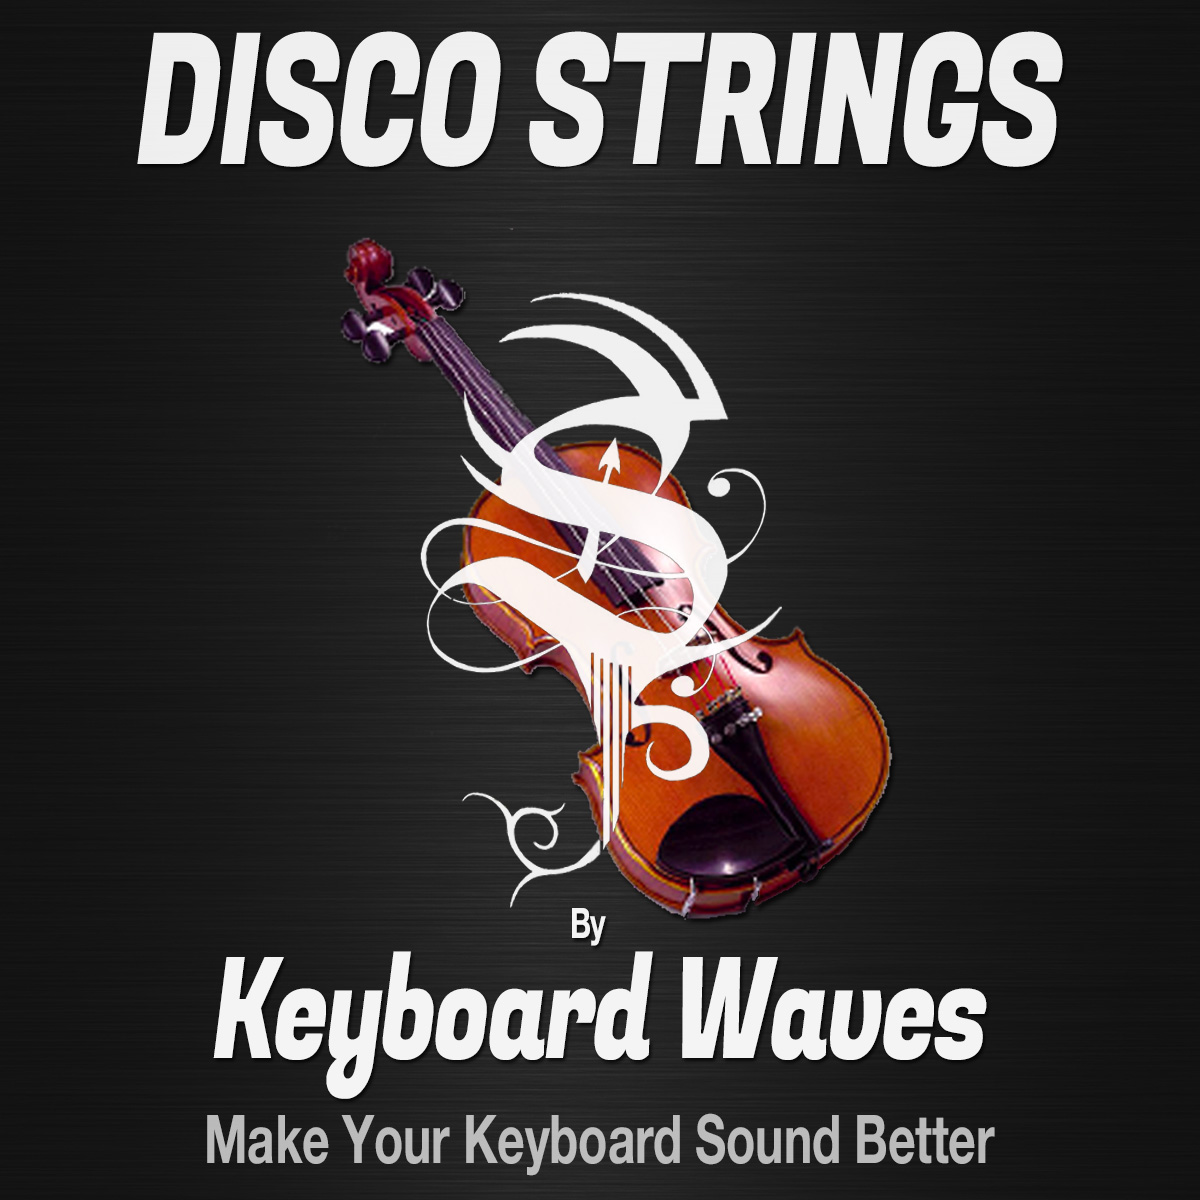 DiscoStrings